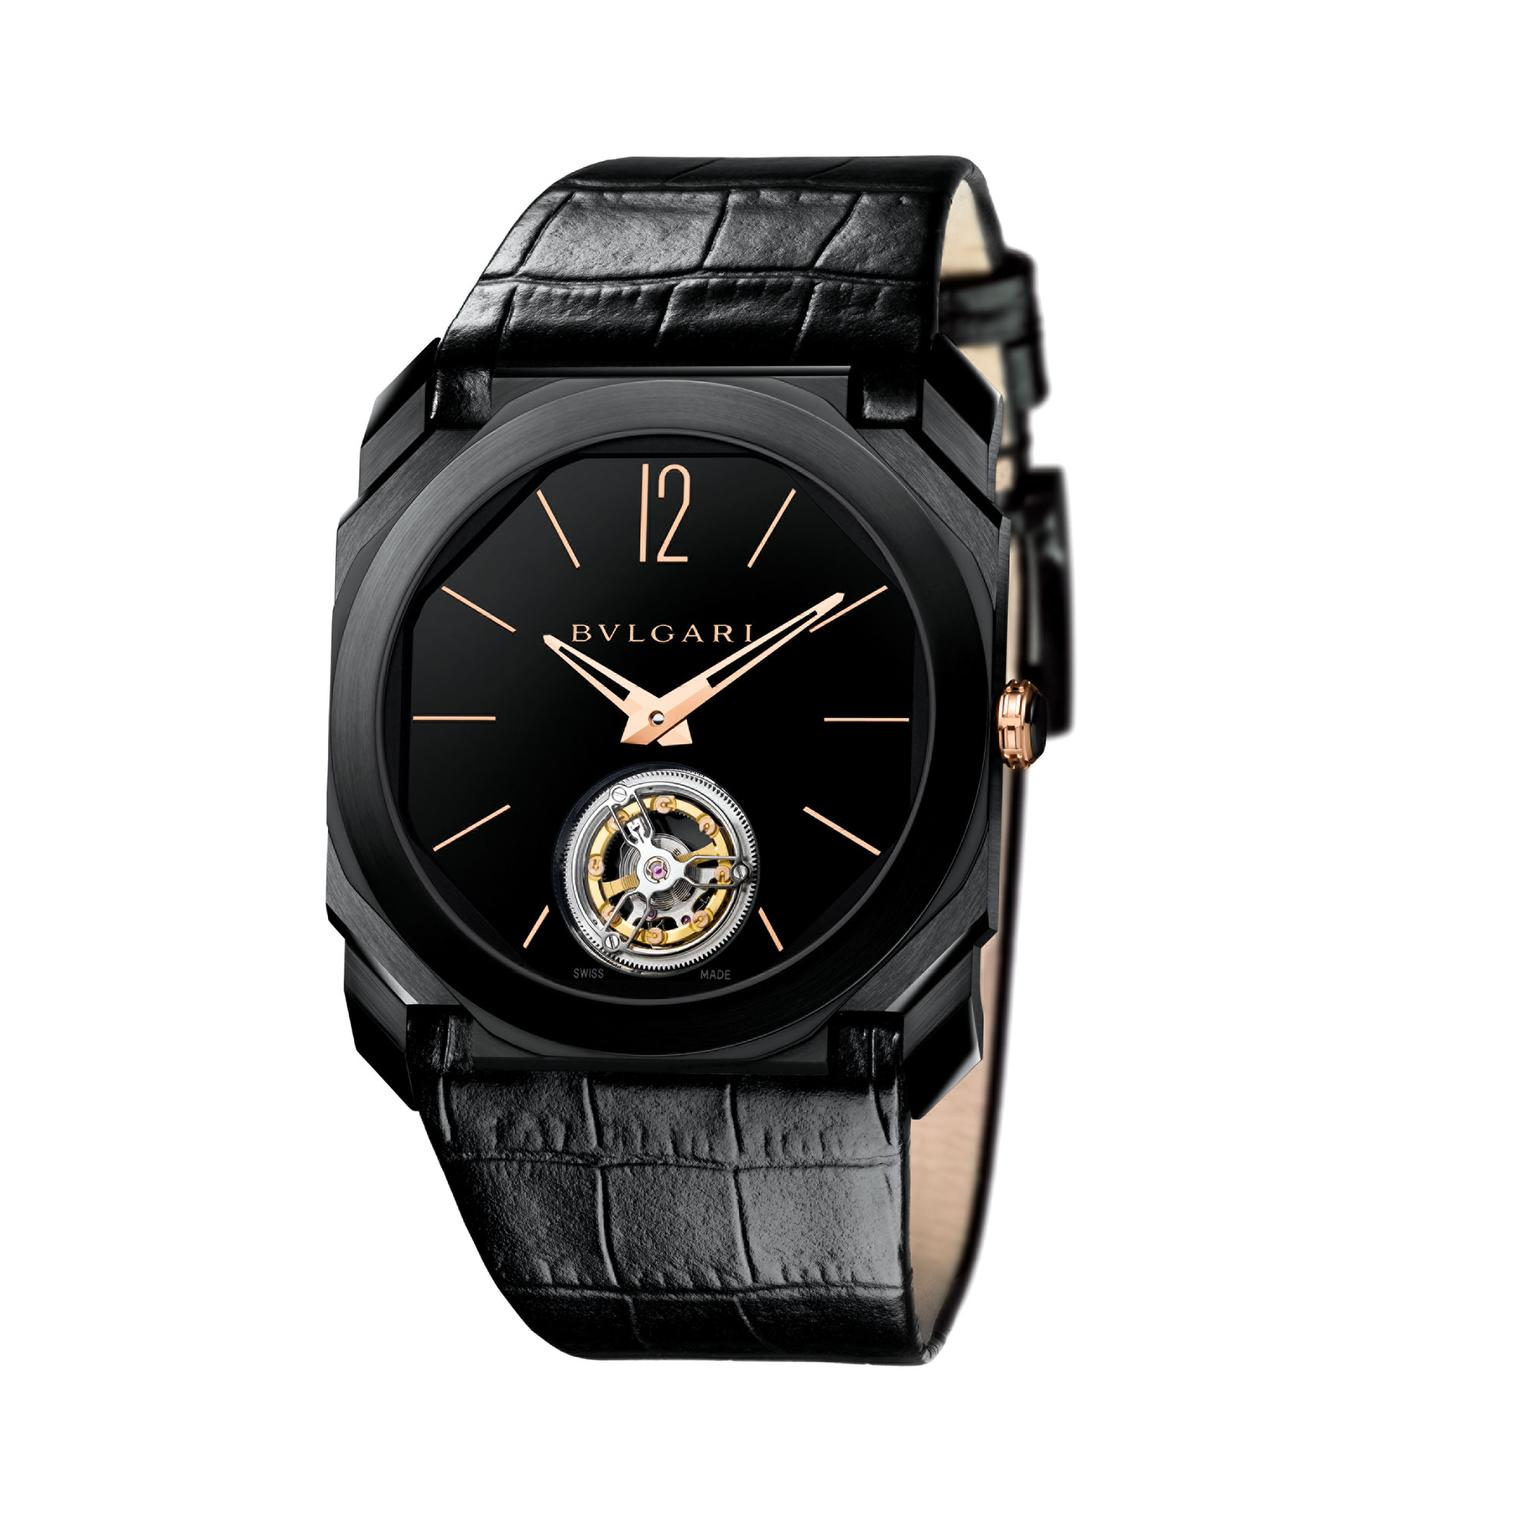 Bulgari Octo Ultranero Tourbillon watch